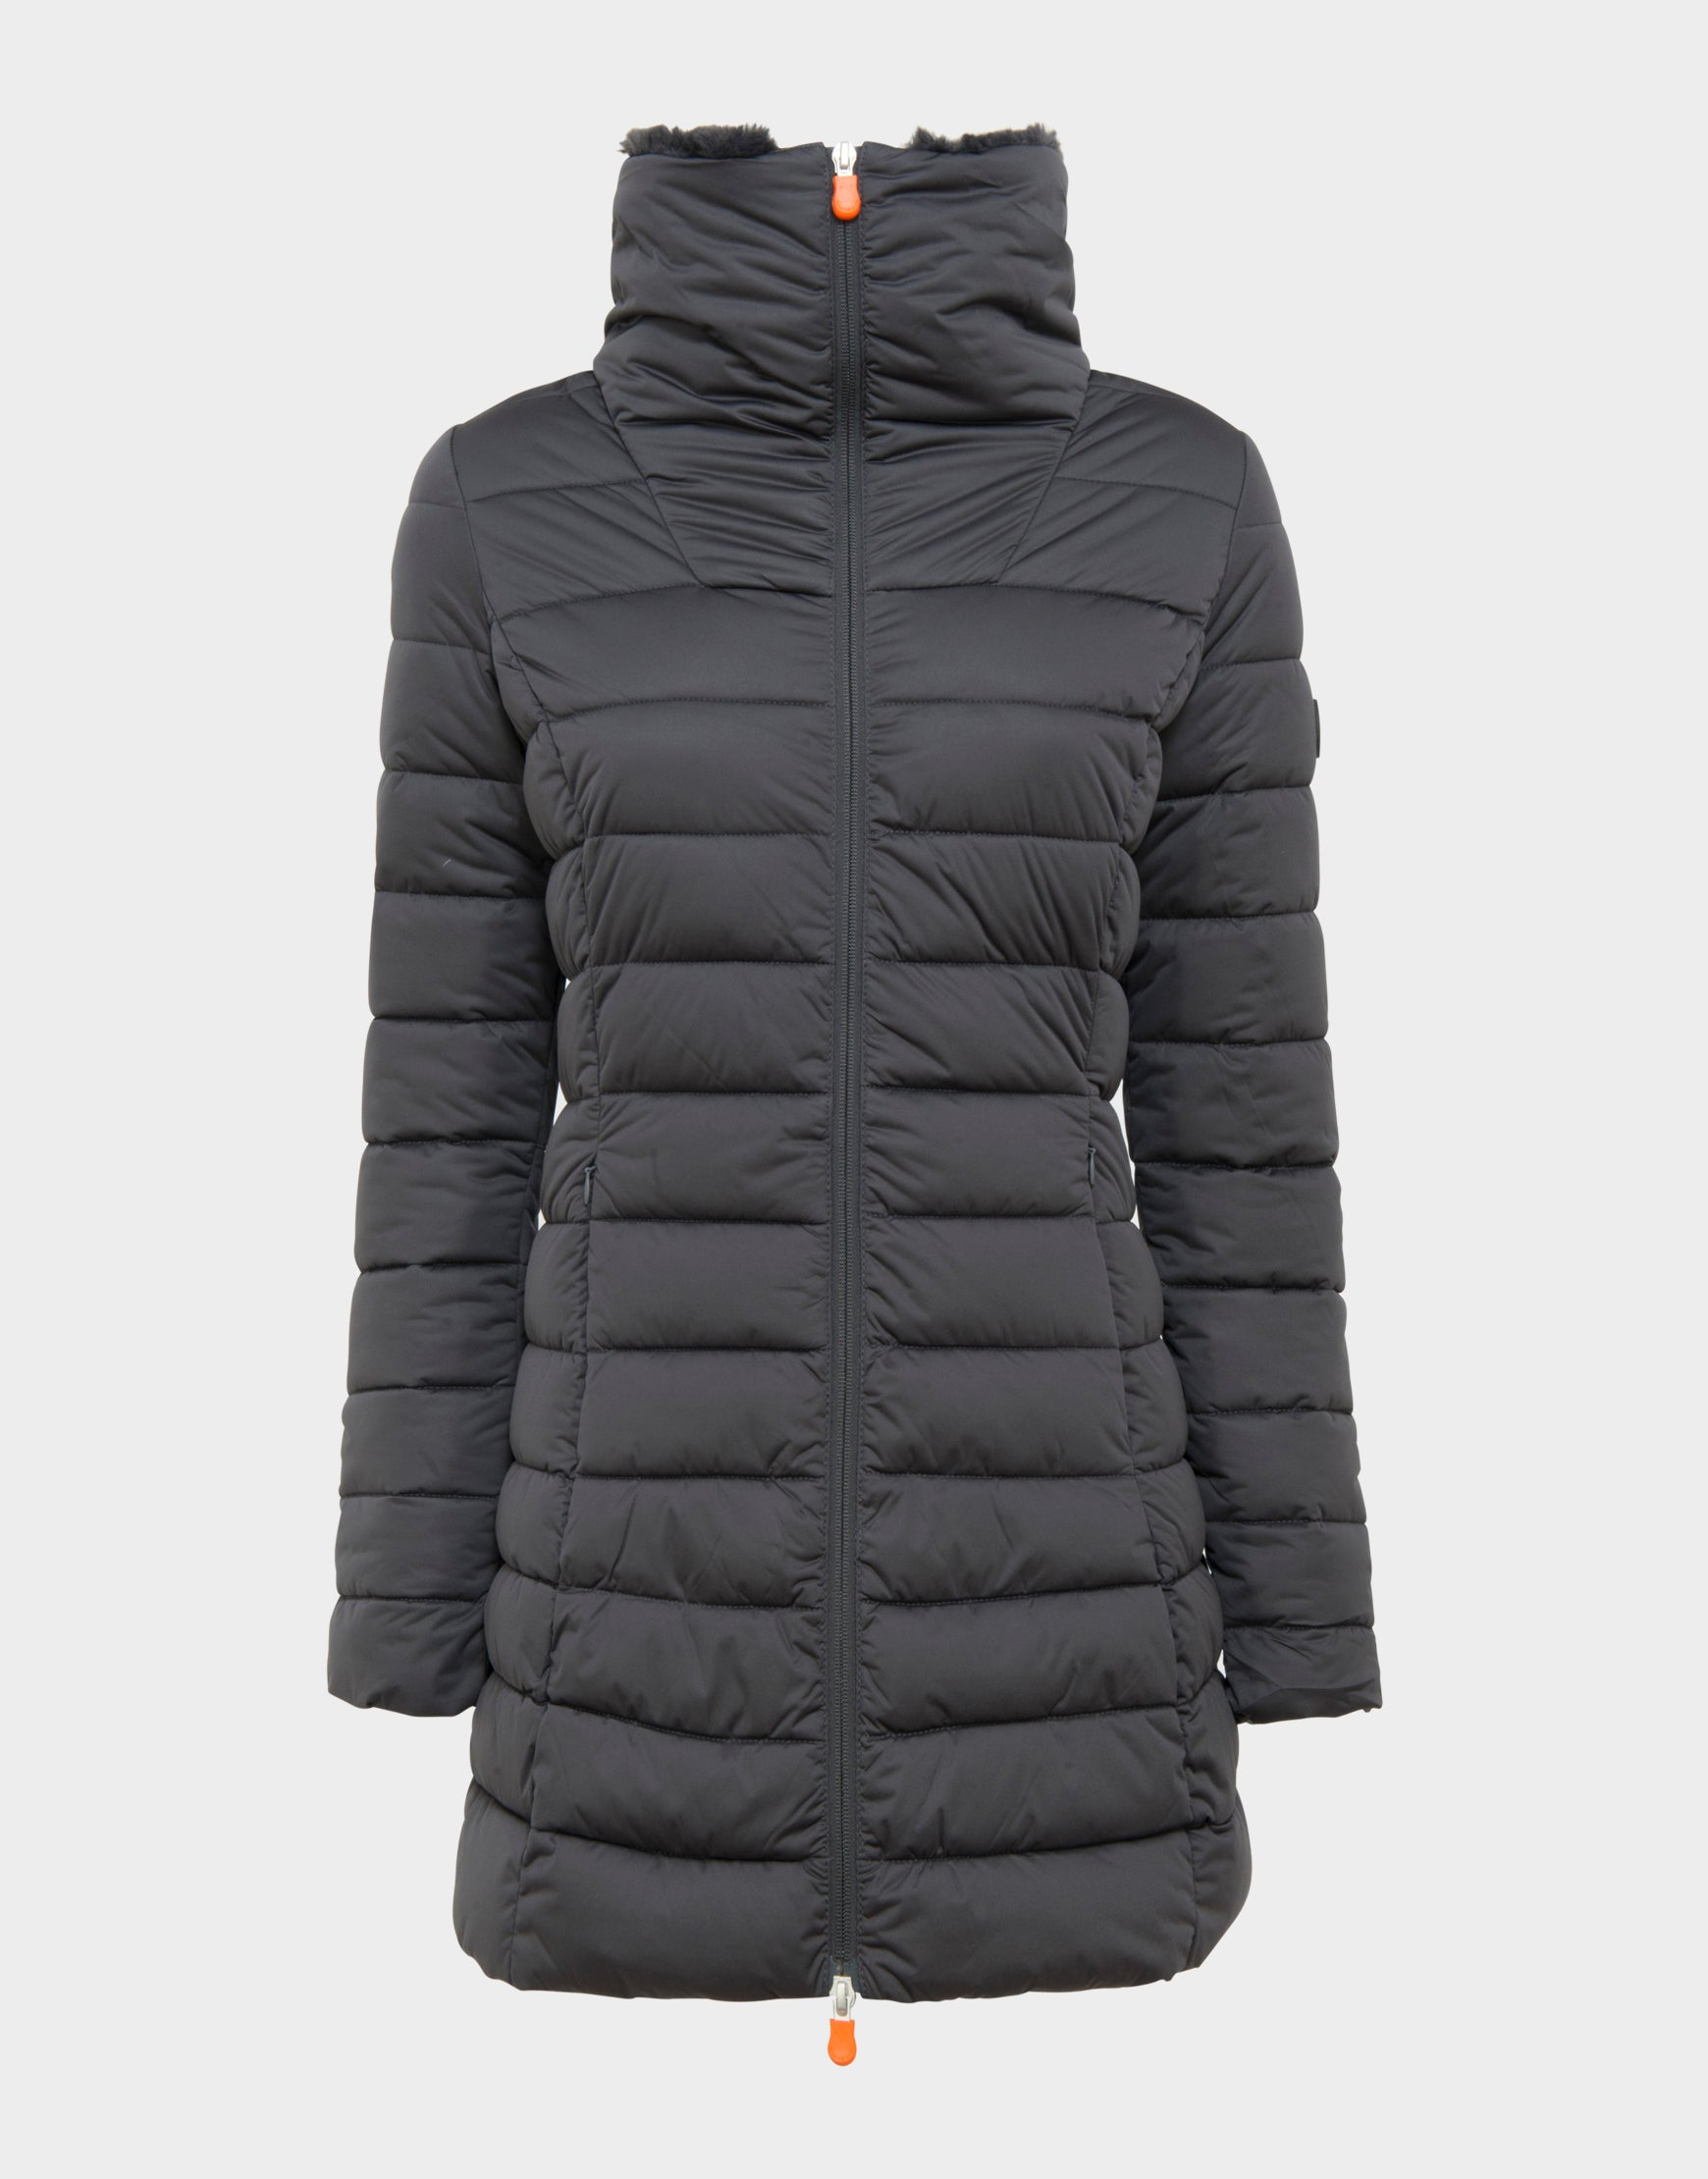 Womens SOLD Stand Up Collar Coat in Grey Black